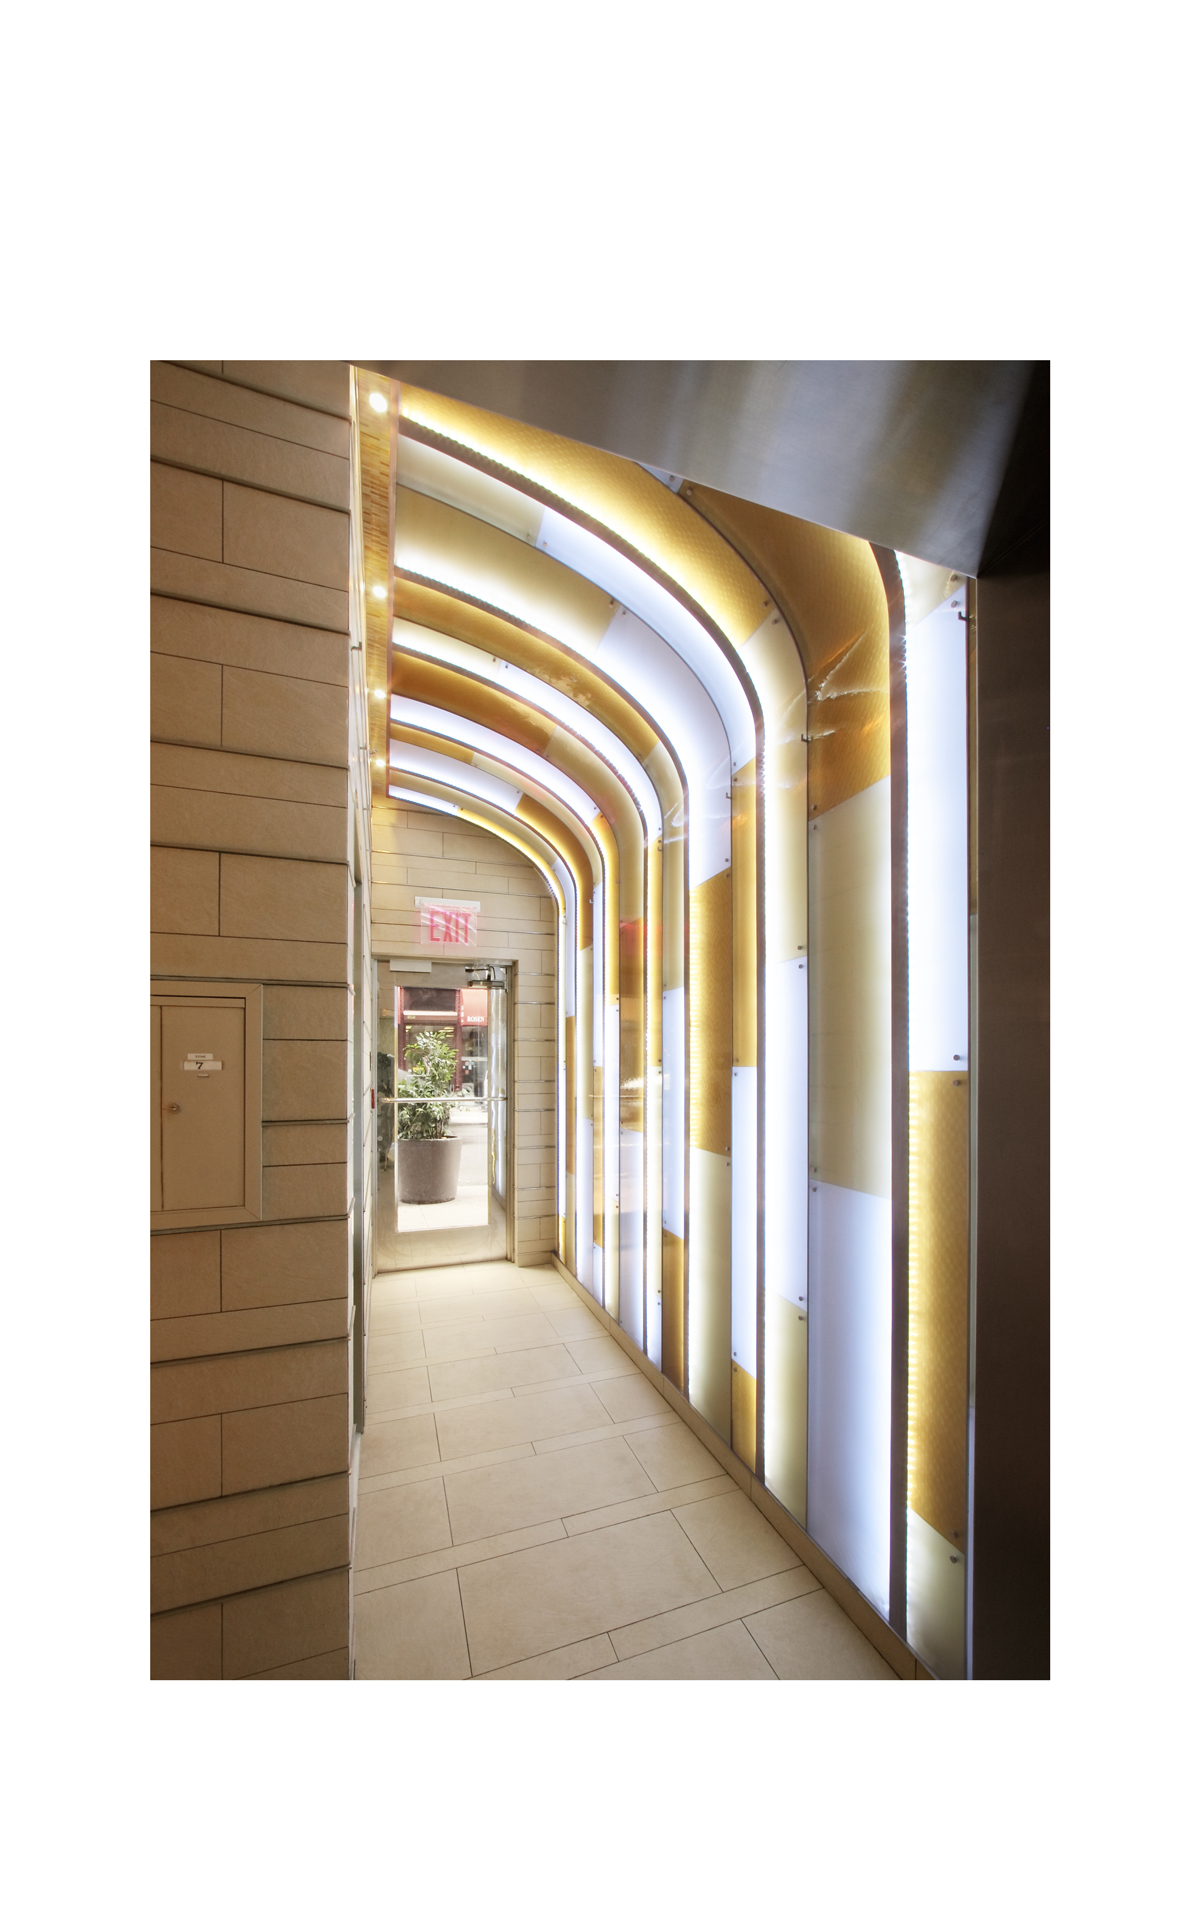 The glowing arched wall is illuminated by concealed leds light filtering through the patterned glass creates depth brightness and enhances the illusion of